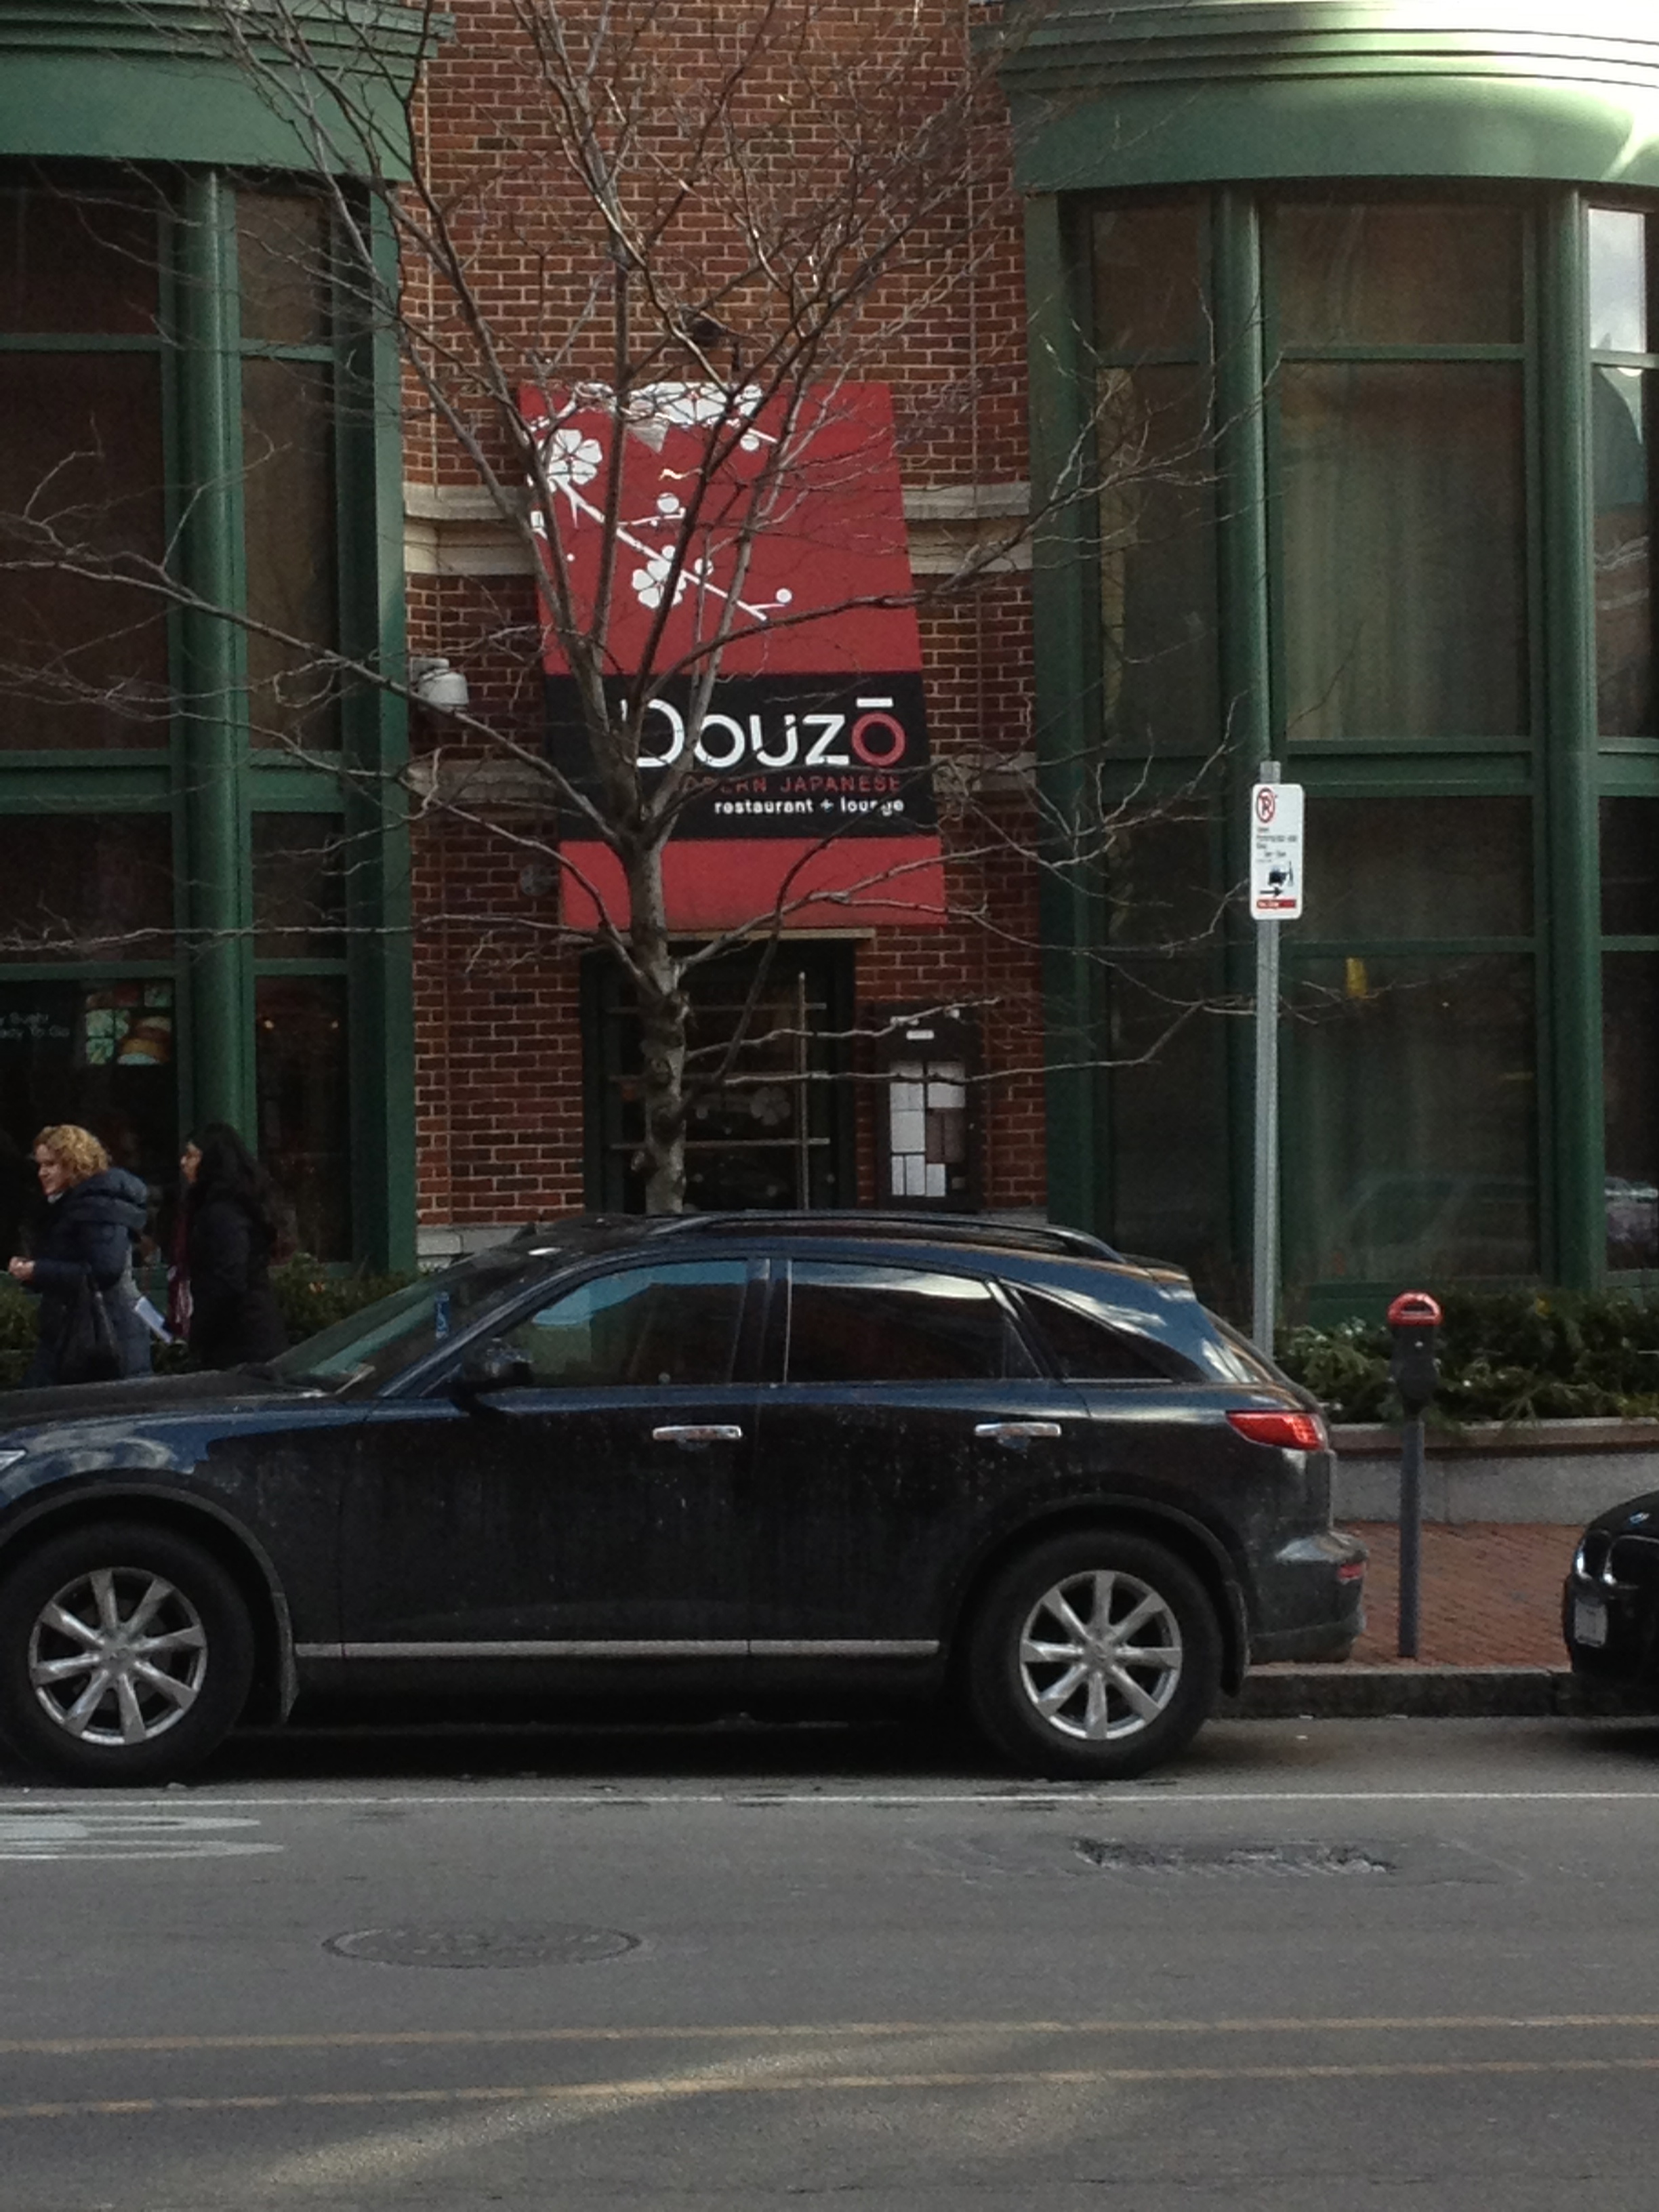 Douzo Sushi Restaurant in Boston